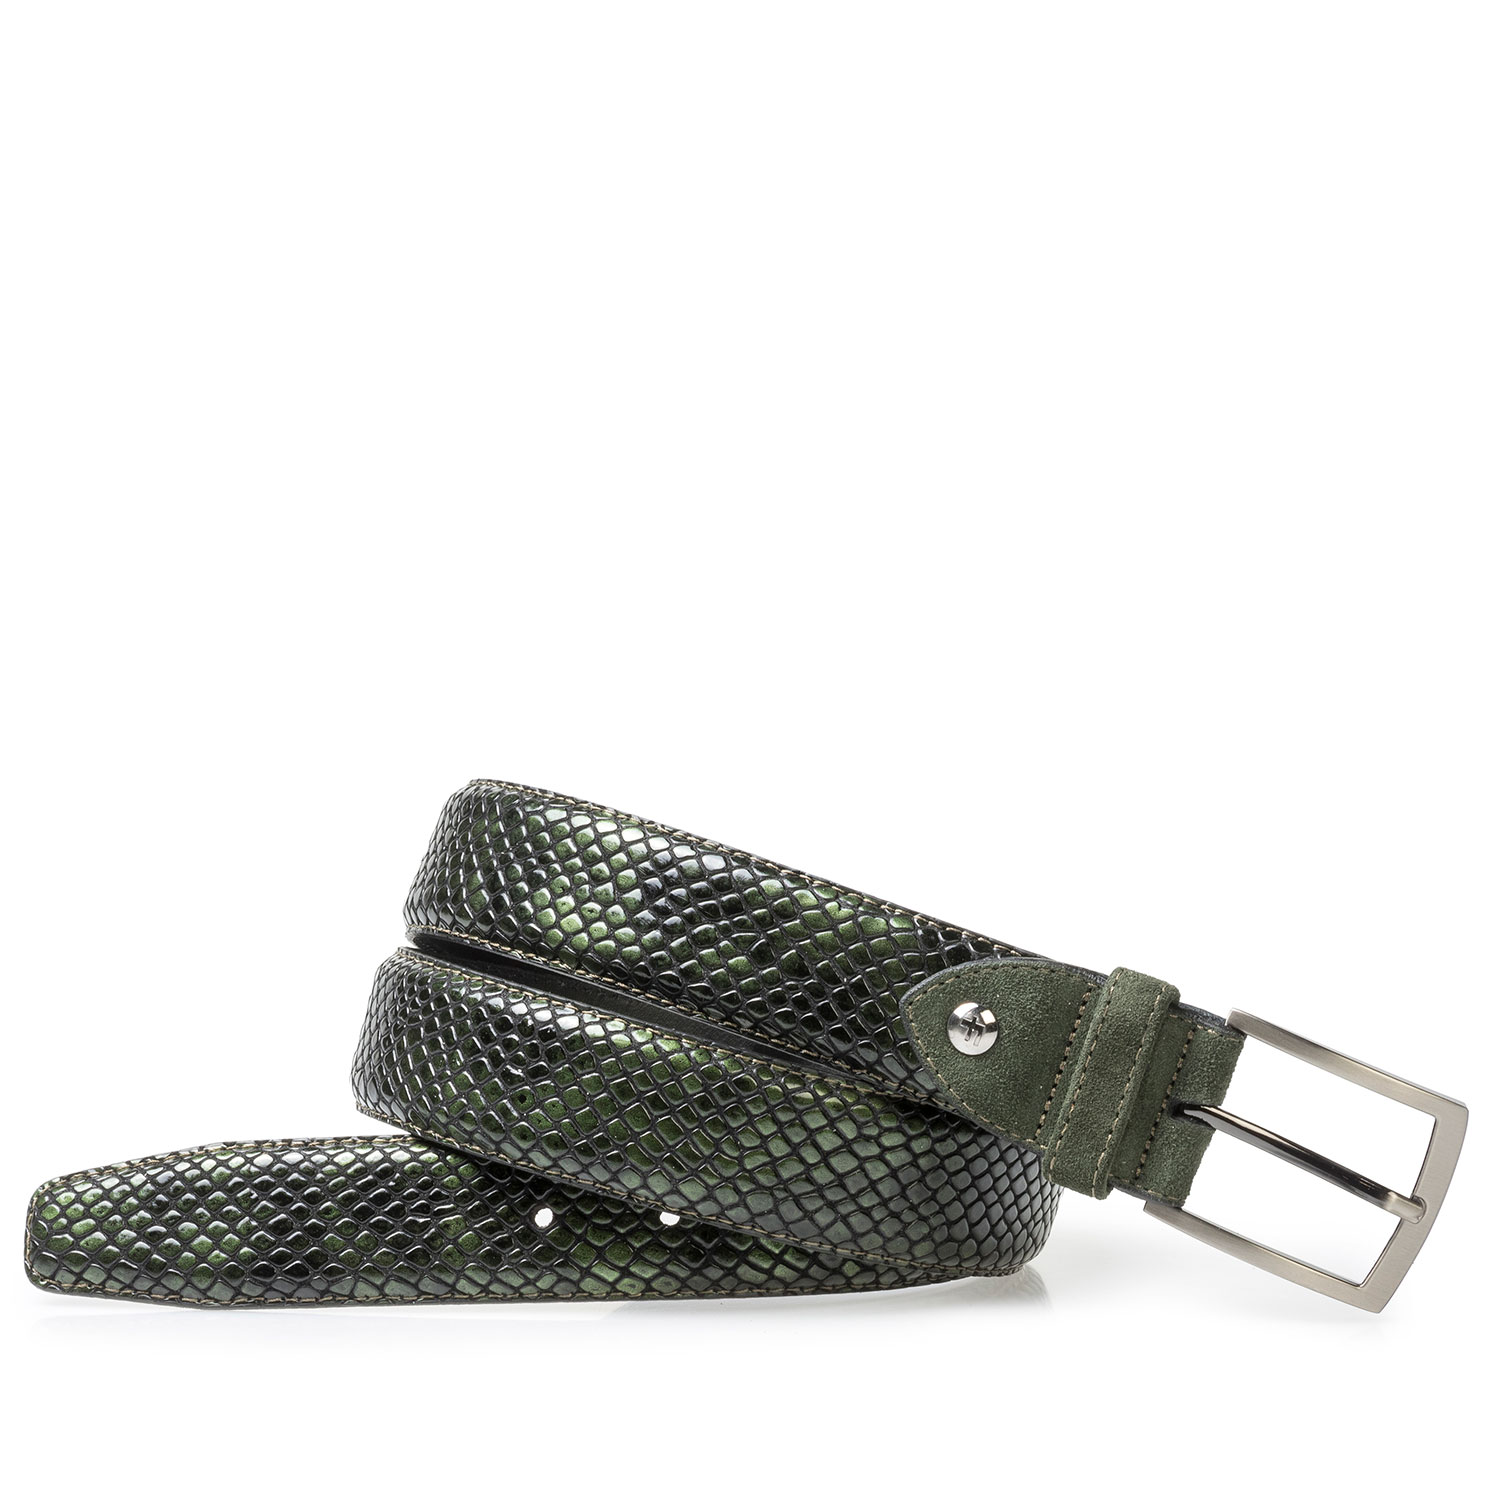 75212/02 - Green printed patent leather belt